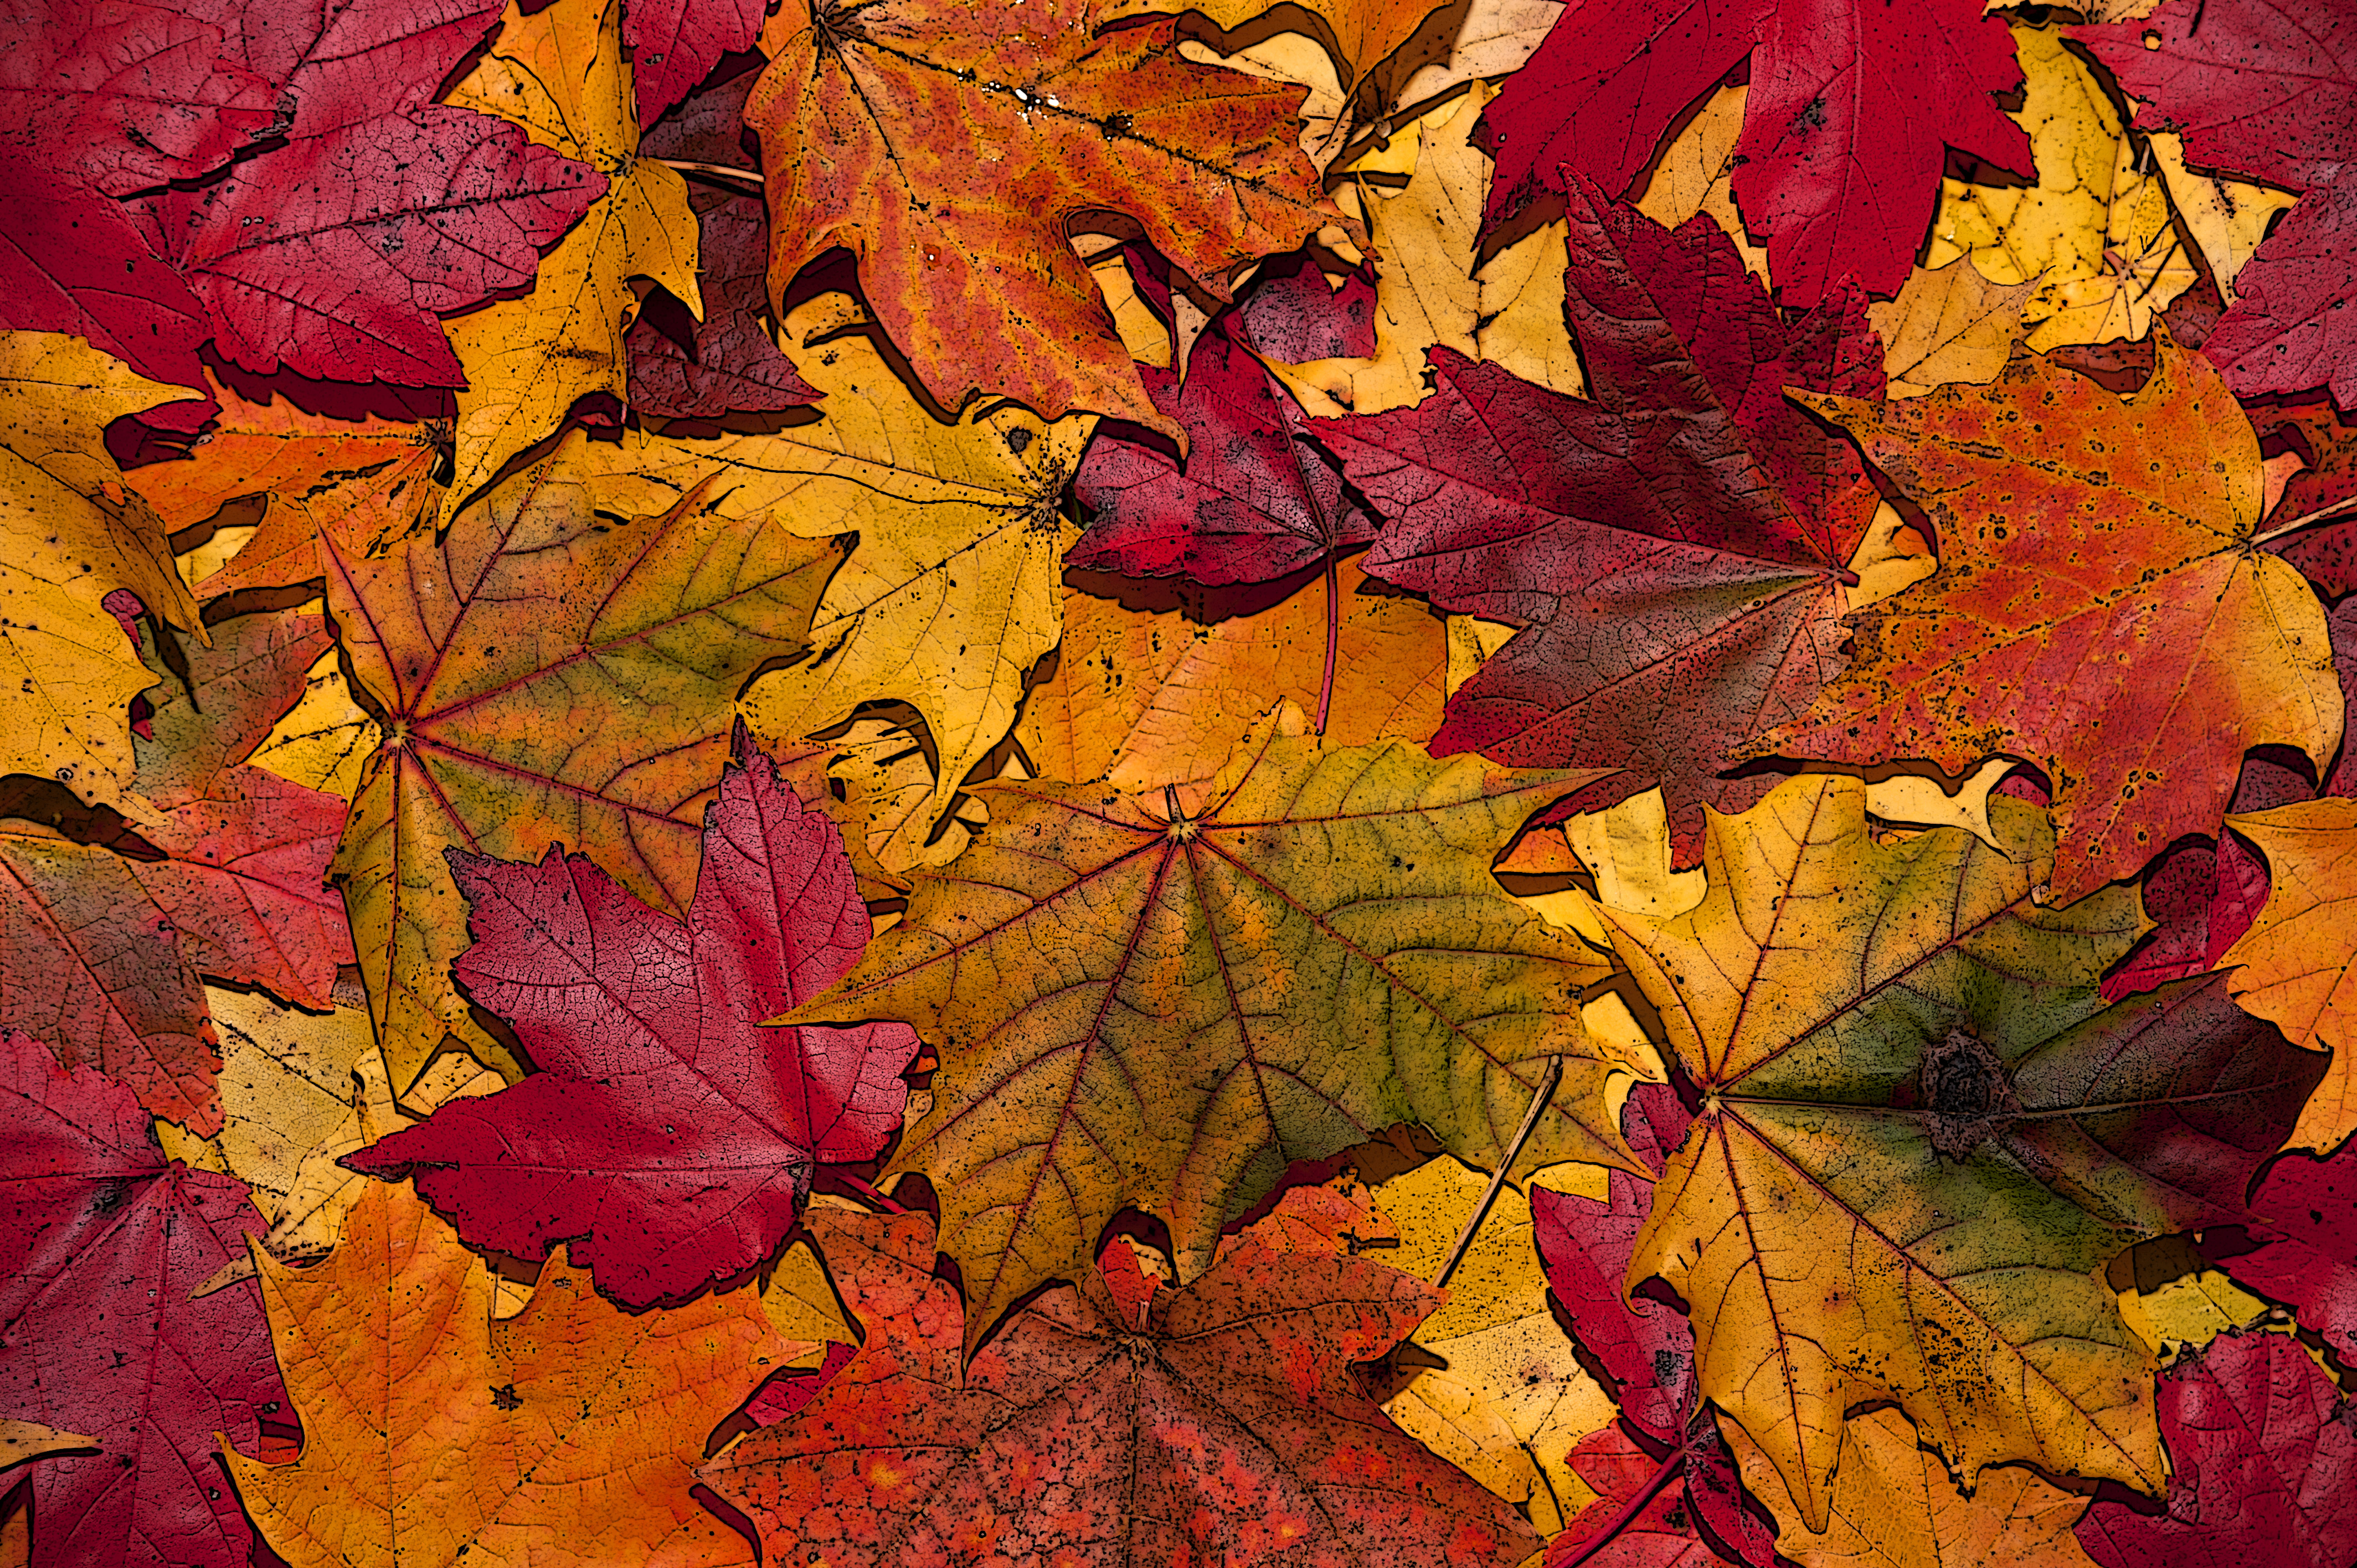 October leaves photo